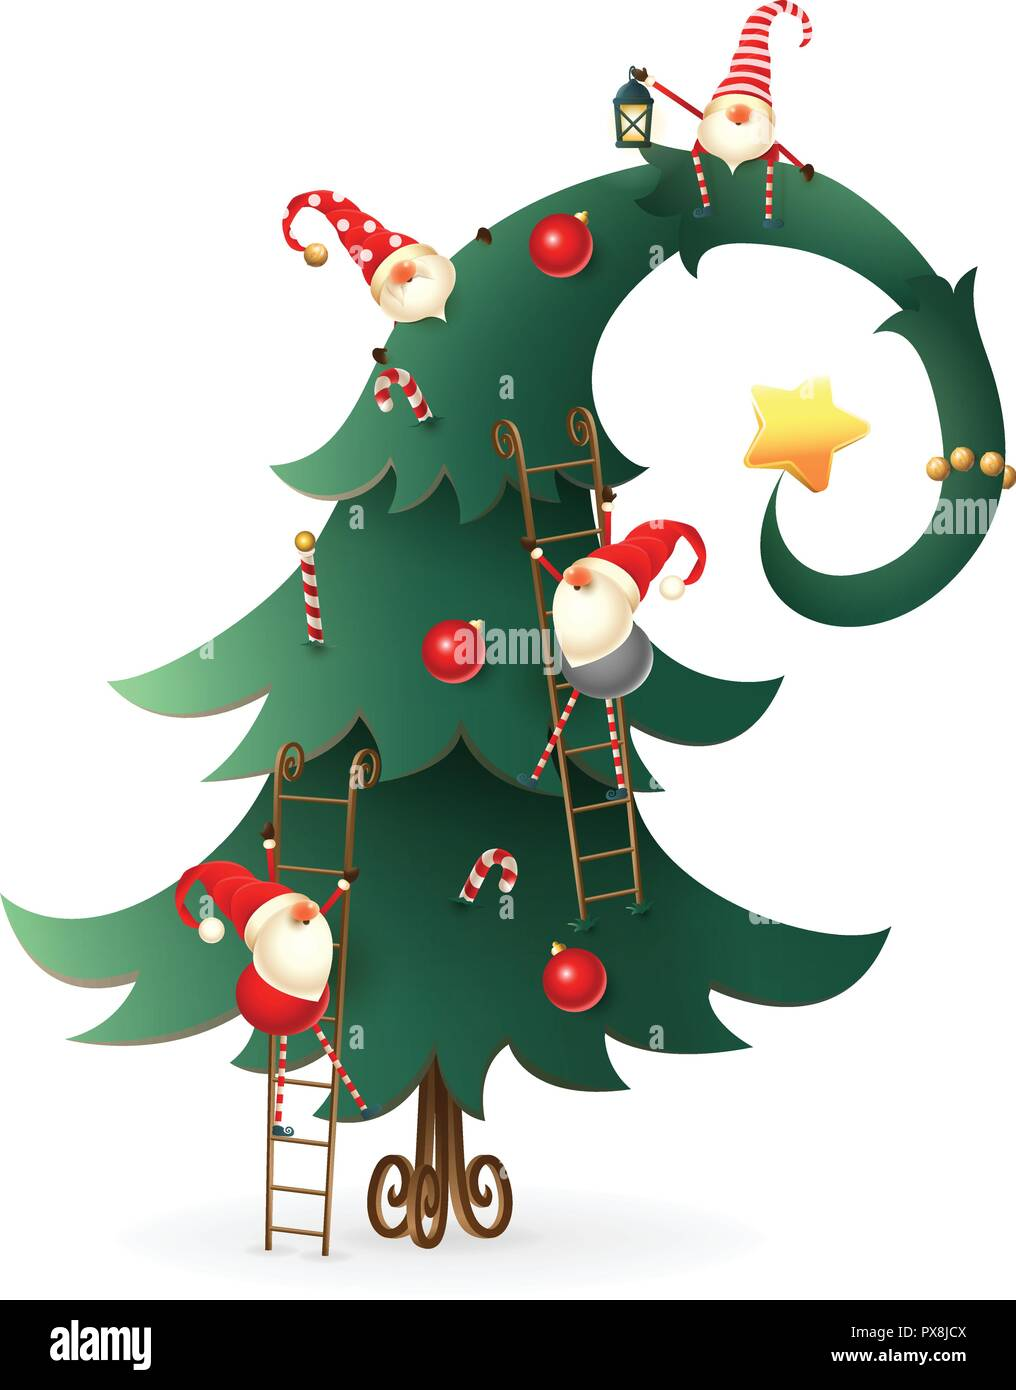 Christmas Tree Transparent Background.Christmas Tree Decorated With Scandinavian Gnomes Who Climb